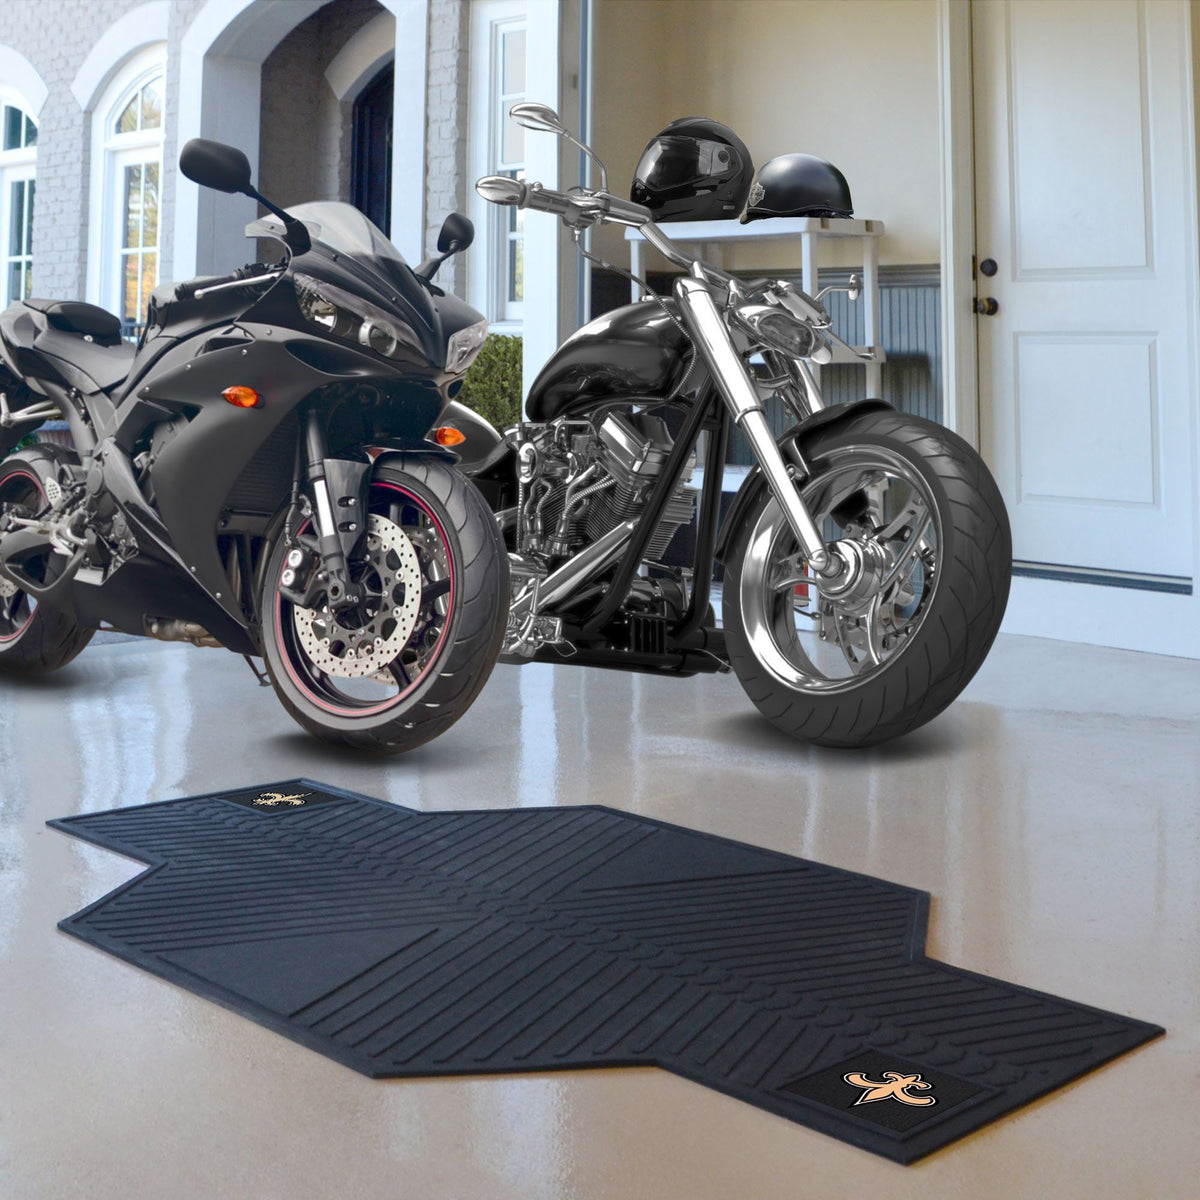 "NFL - Motorcycle Mat, 82.5"" x 42"" NFL Mats, Motorcycle Accessory, Motorcycle Mat, NFL, Auto Fan Mats New Orleans Saints"